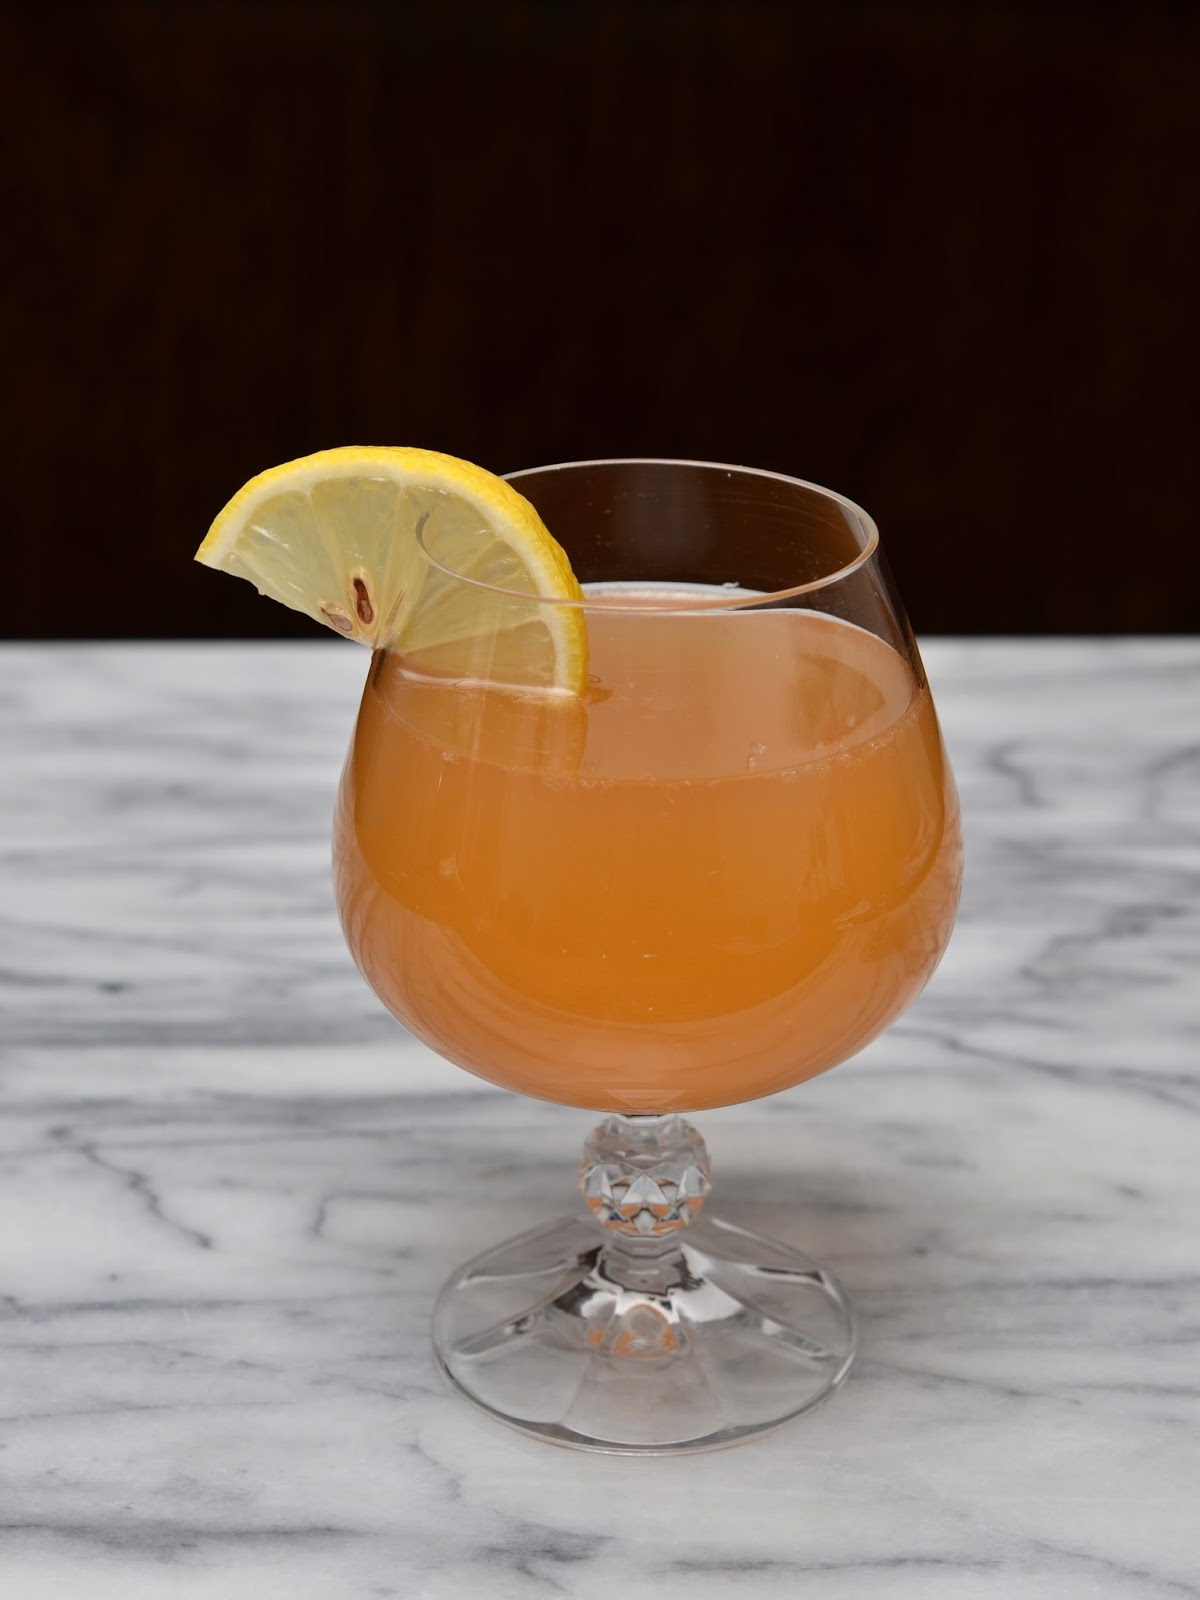 rye grapefruit whisky sour cocktail